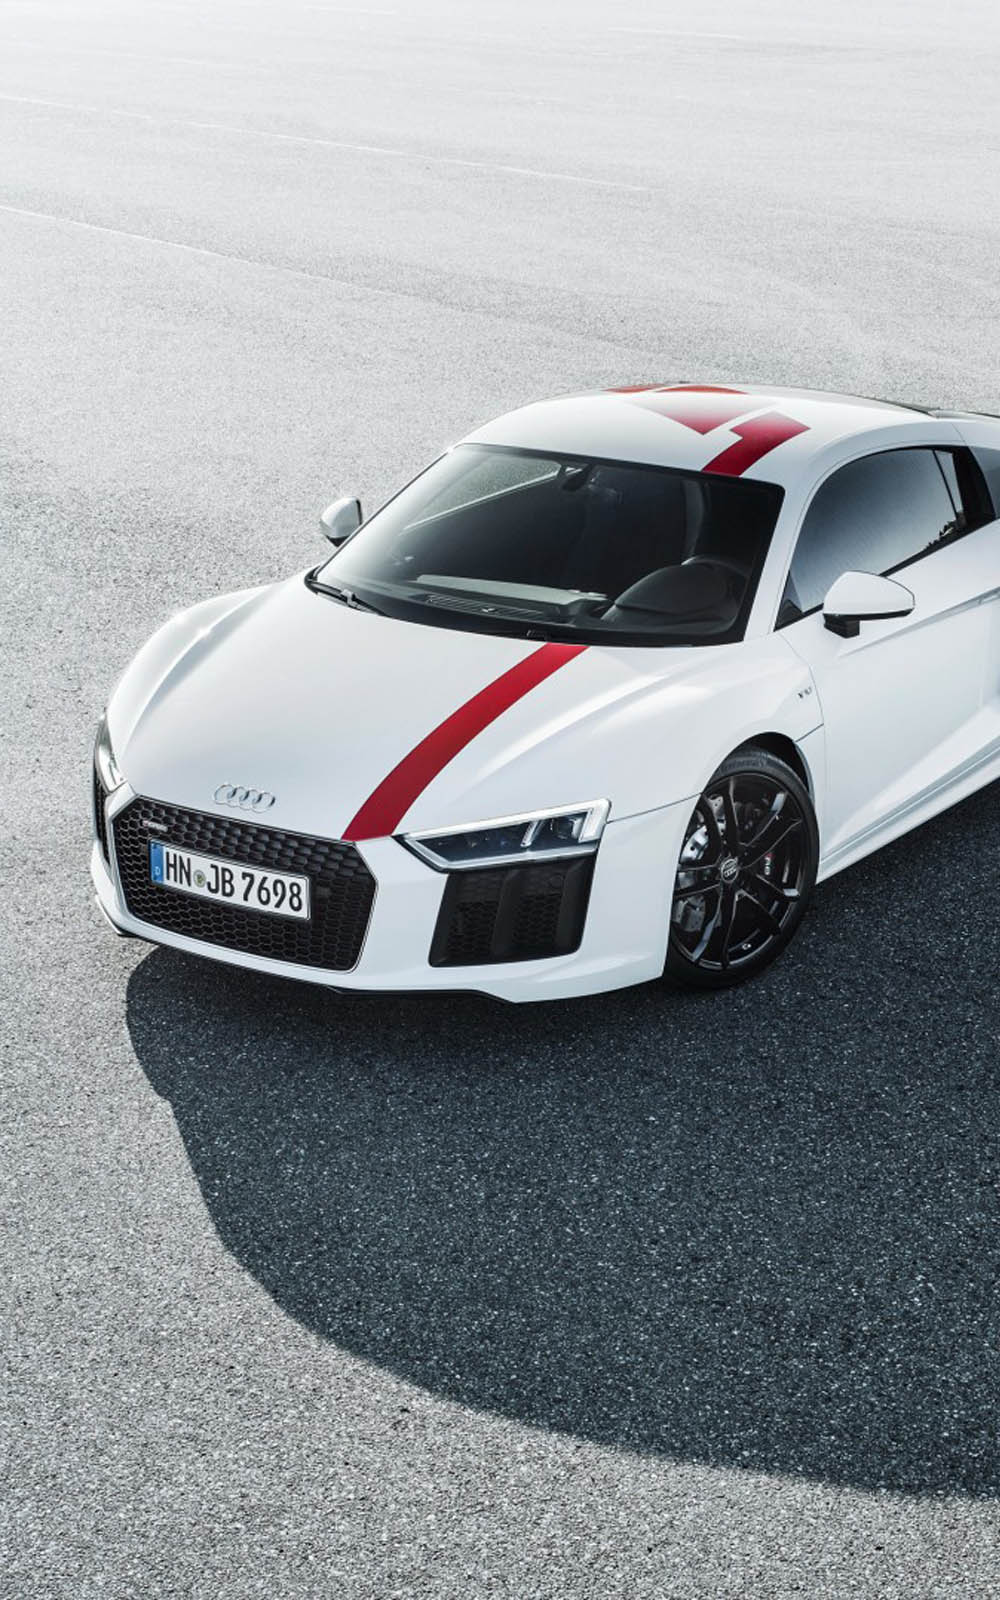 White Audi R8 V10 RWS 2018 HD Mobile Wallpaper